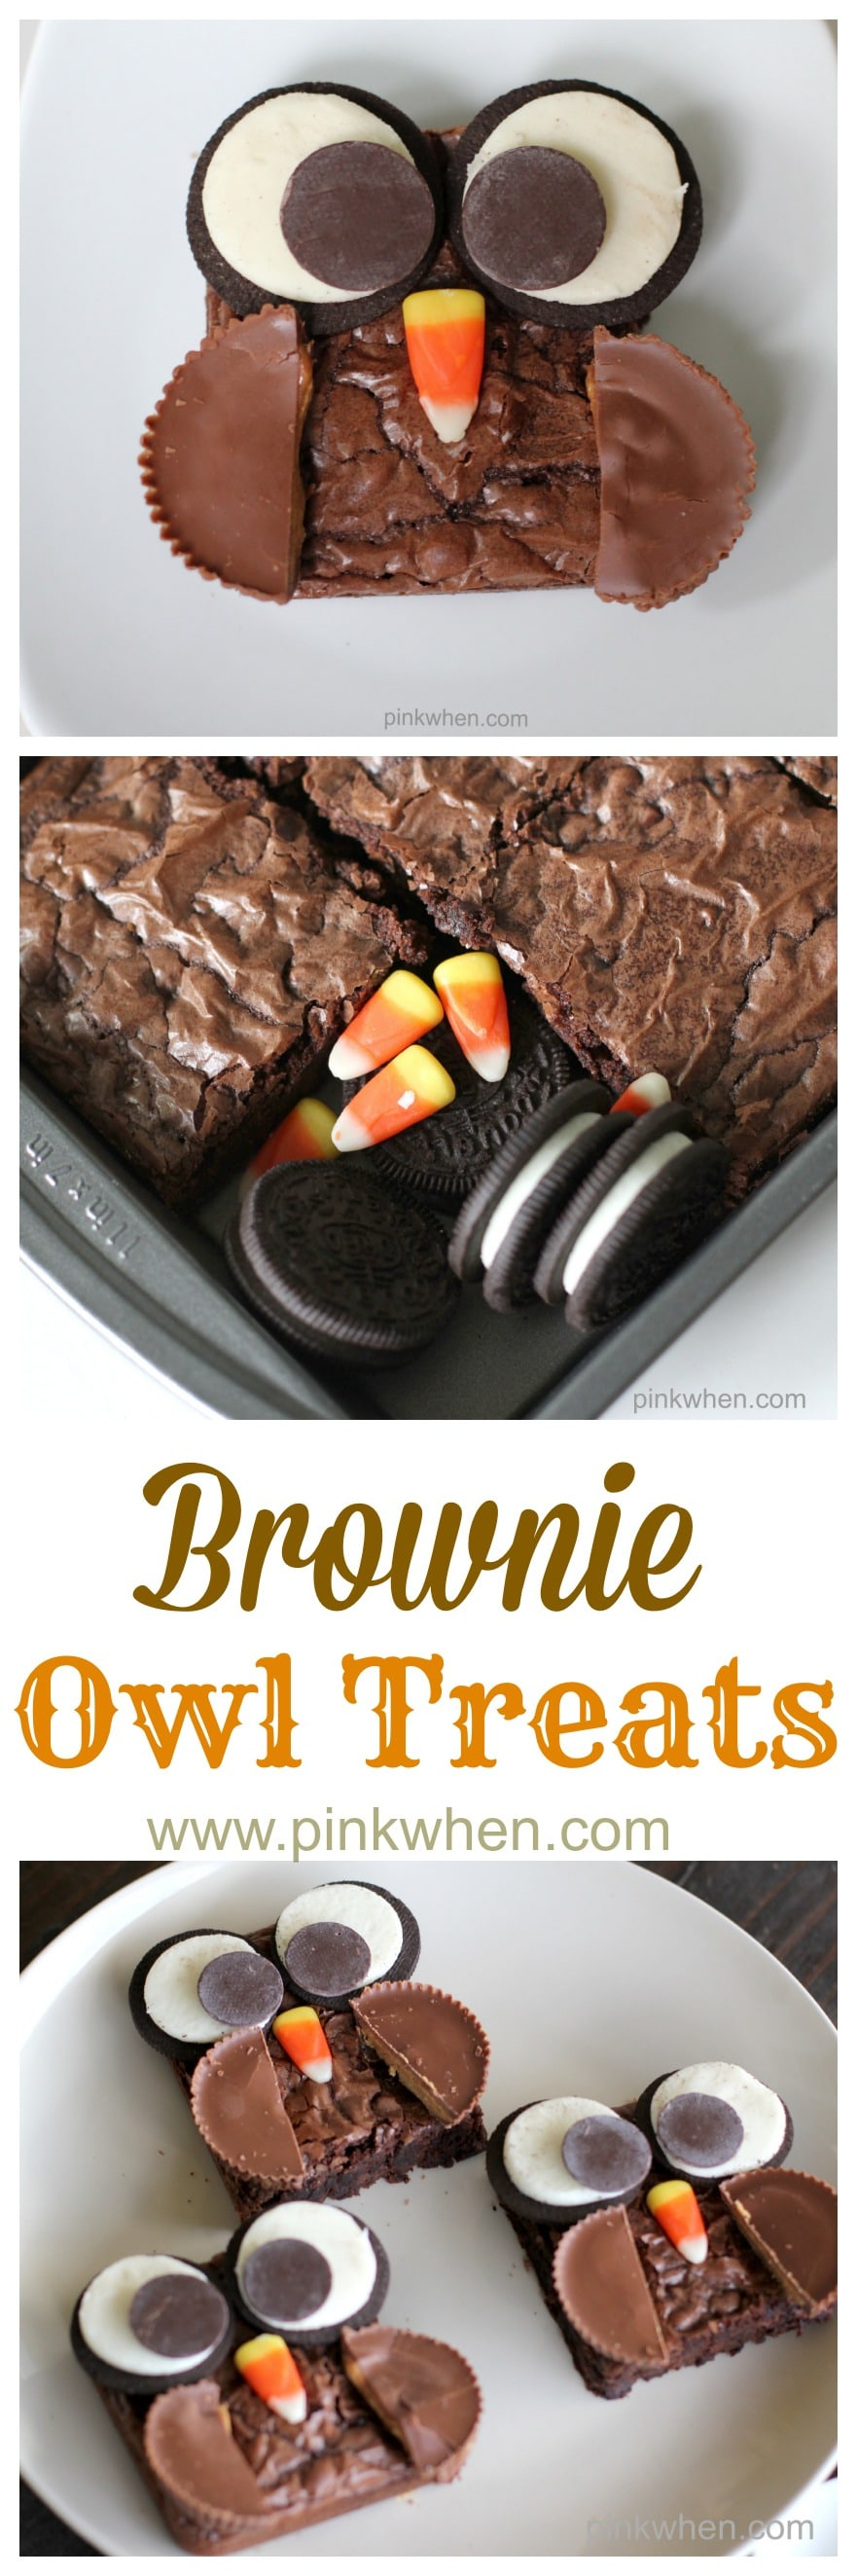 Cute and Simple Brownie Owl treats via PinkWhen.com